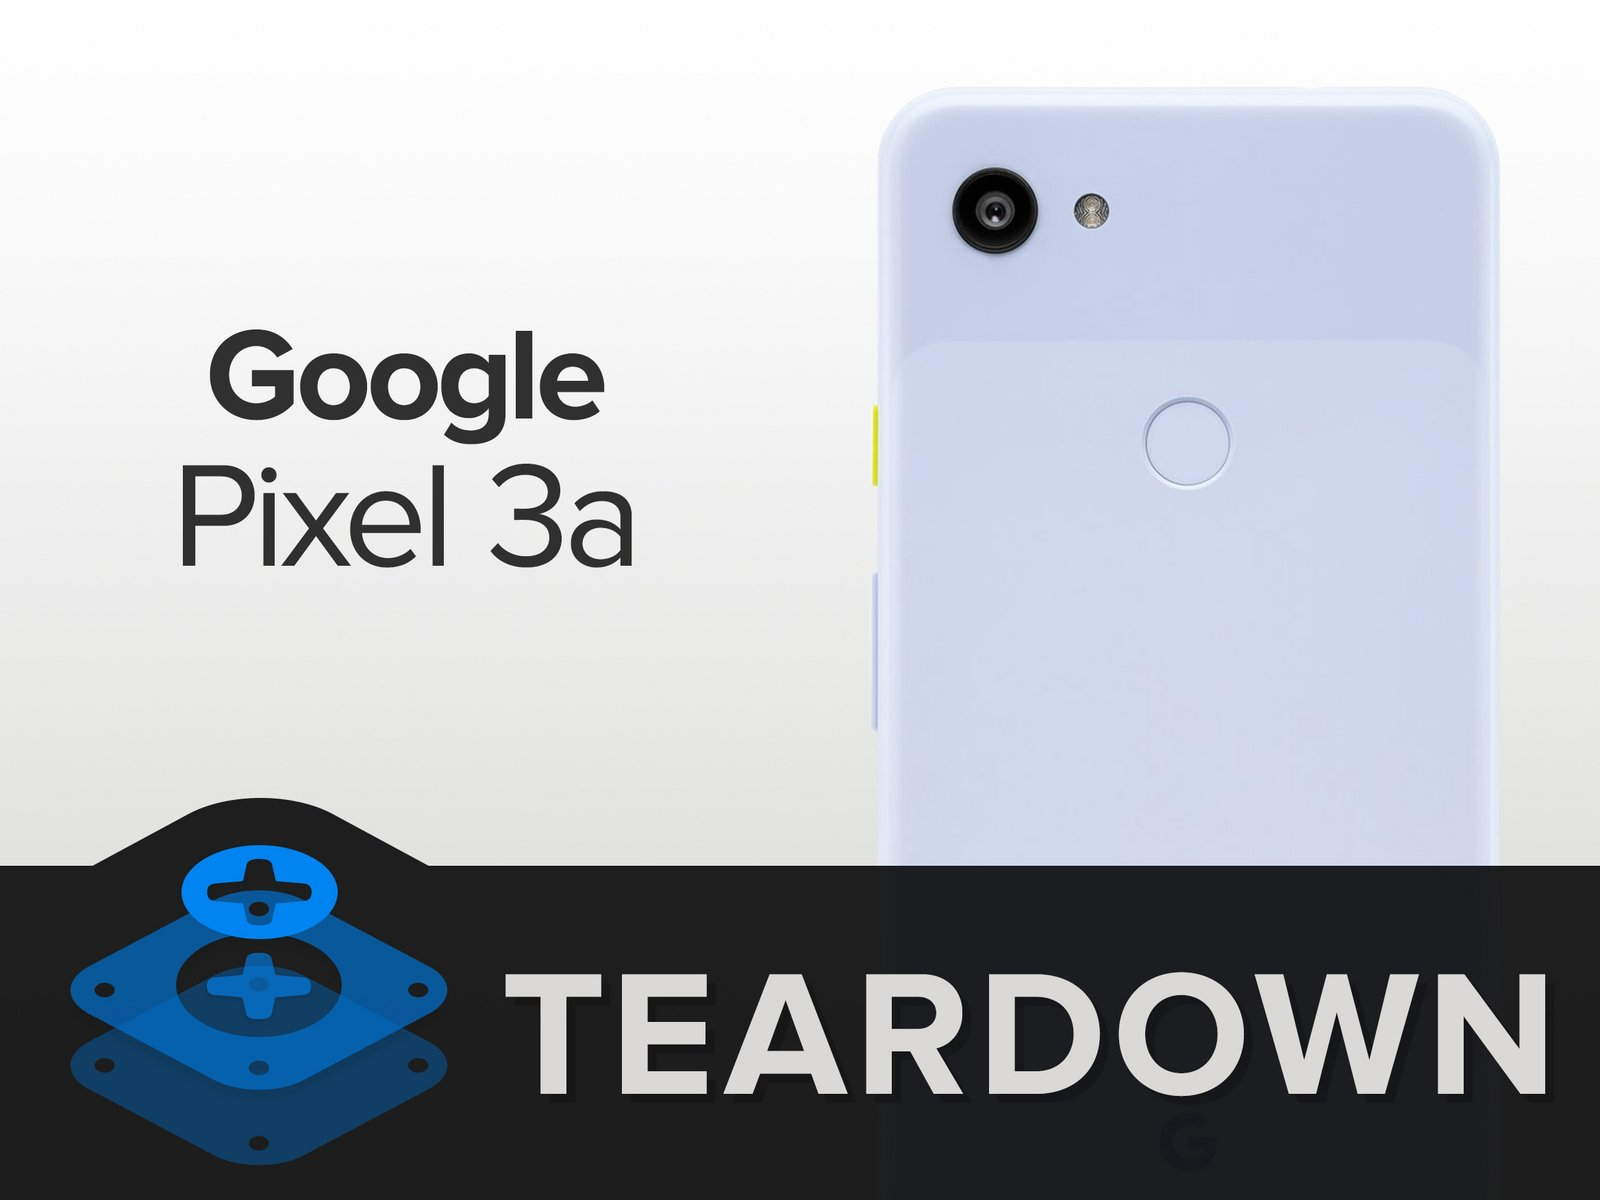 pixel 3a teardown